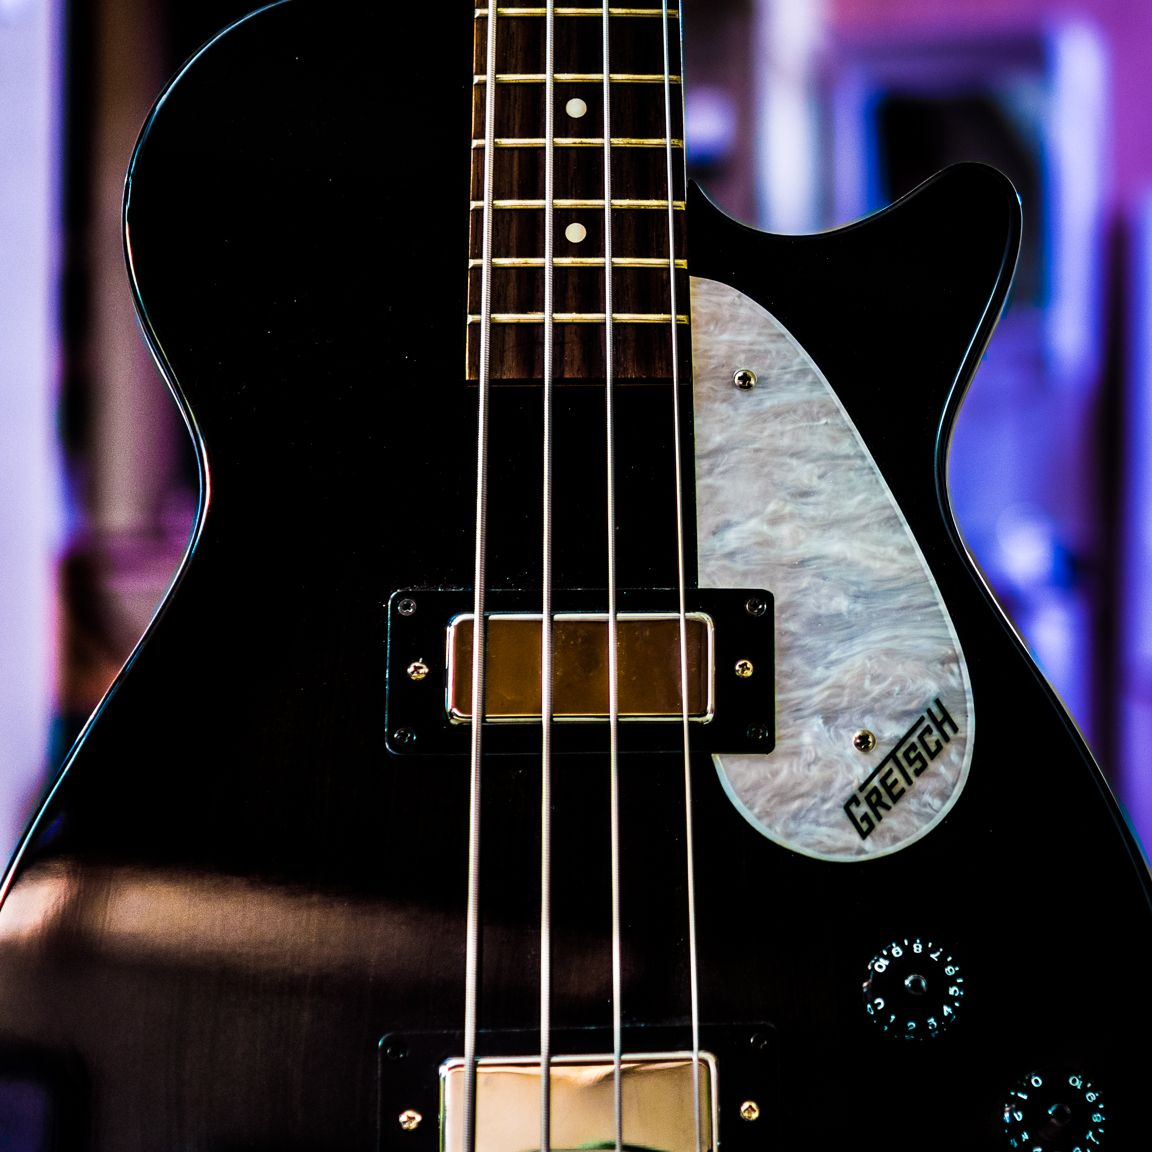 Gretsch Electromatic Bass Guitar